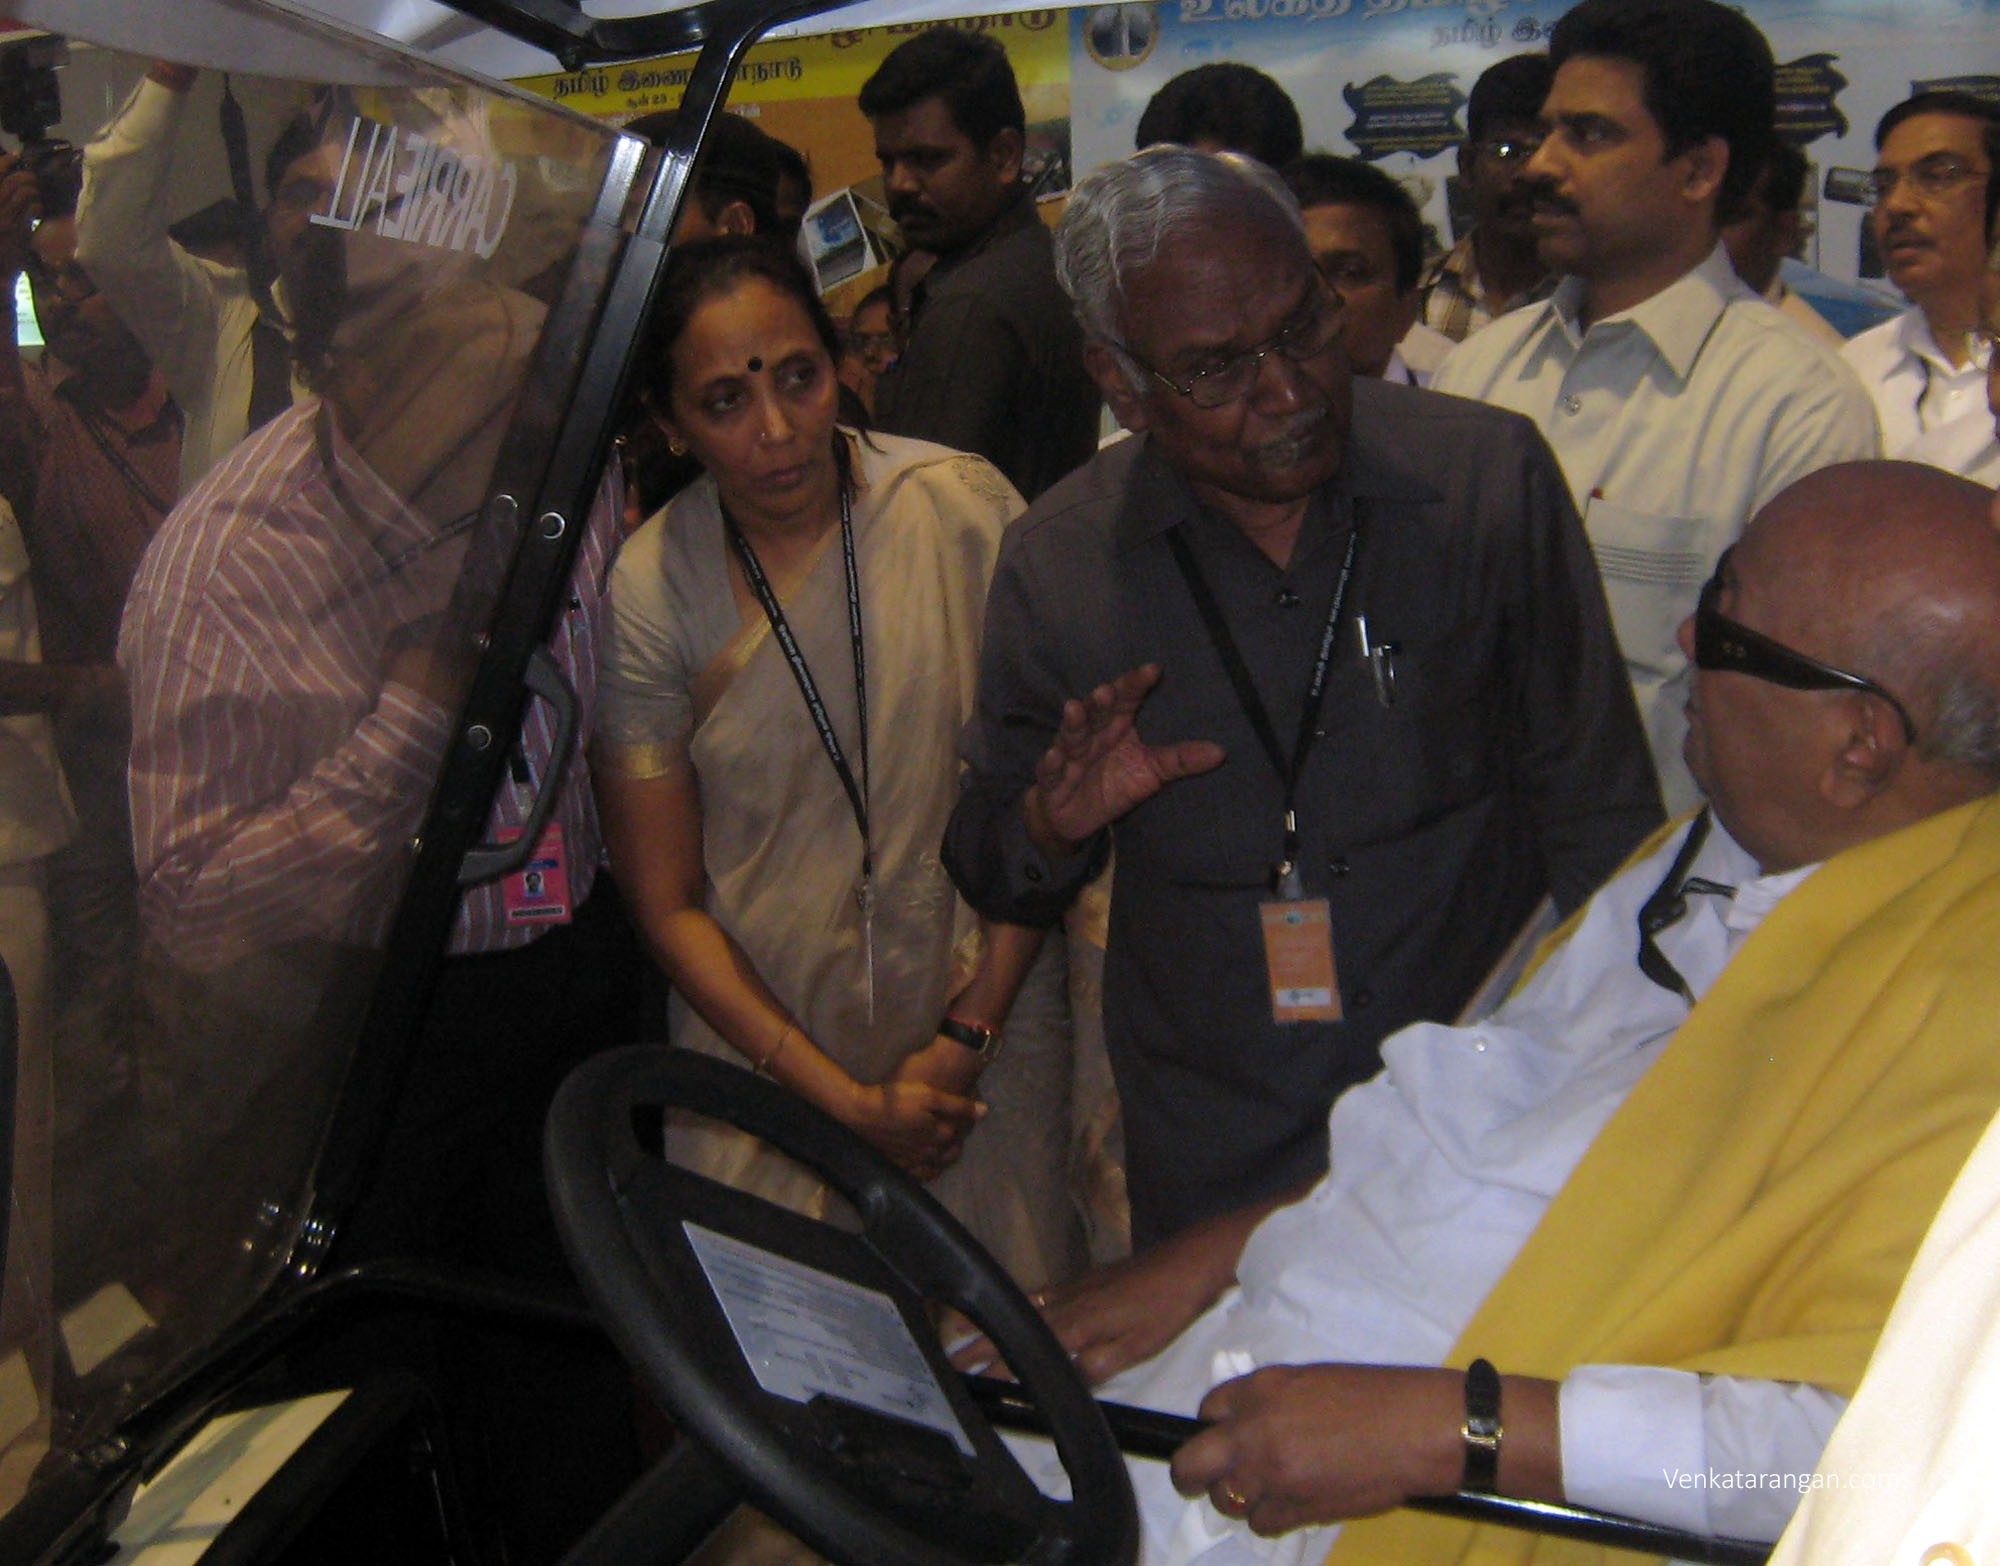 Dr Kalaignar Karunanidhi (then CM) visiting the Tamil Internet Conference 2010 exhibition in Kovai